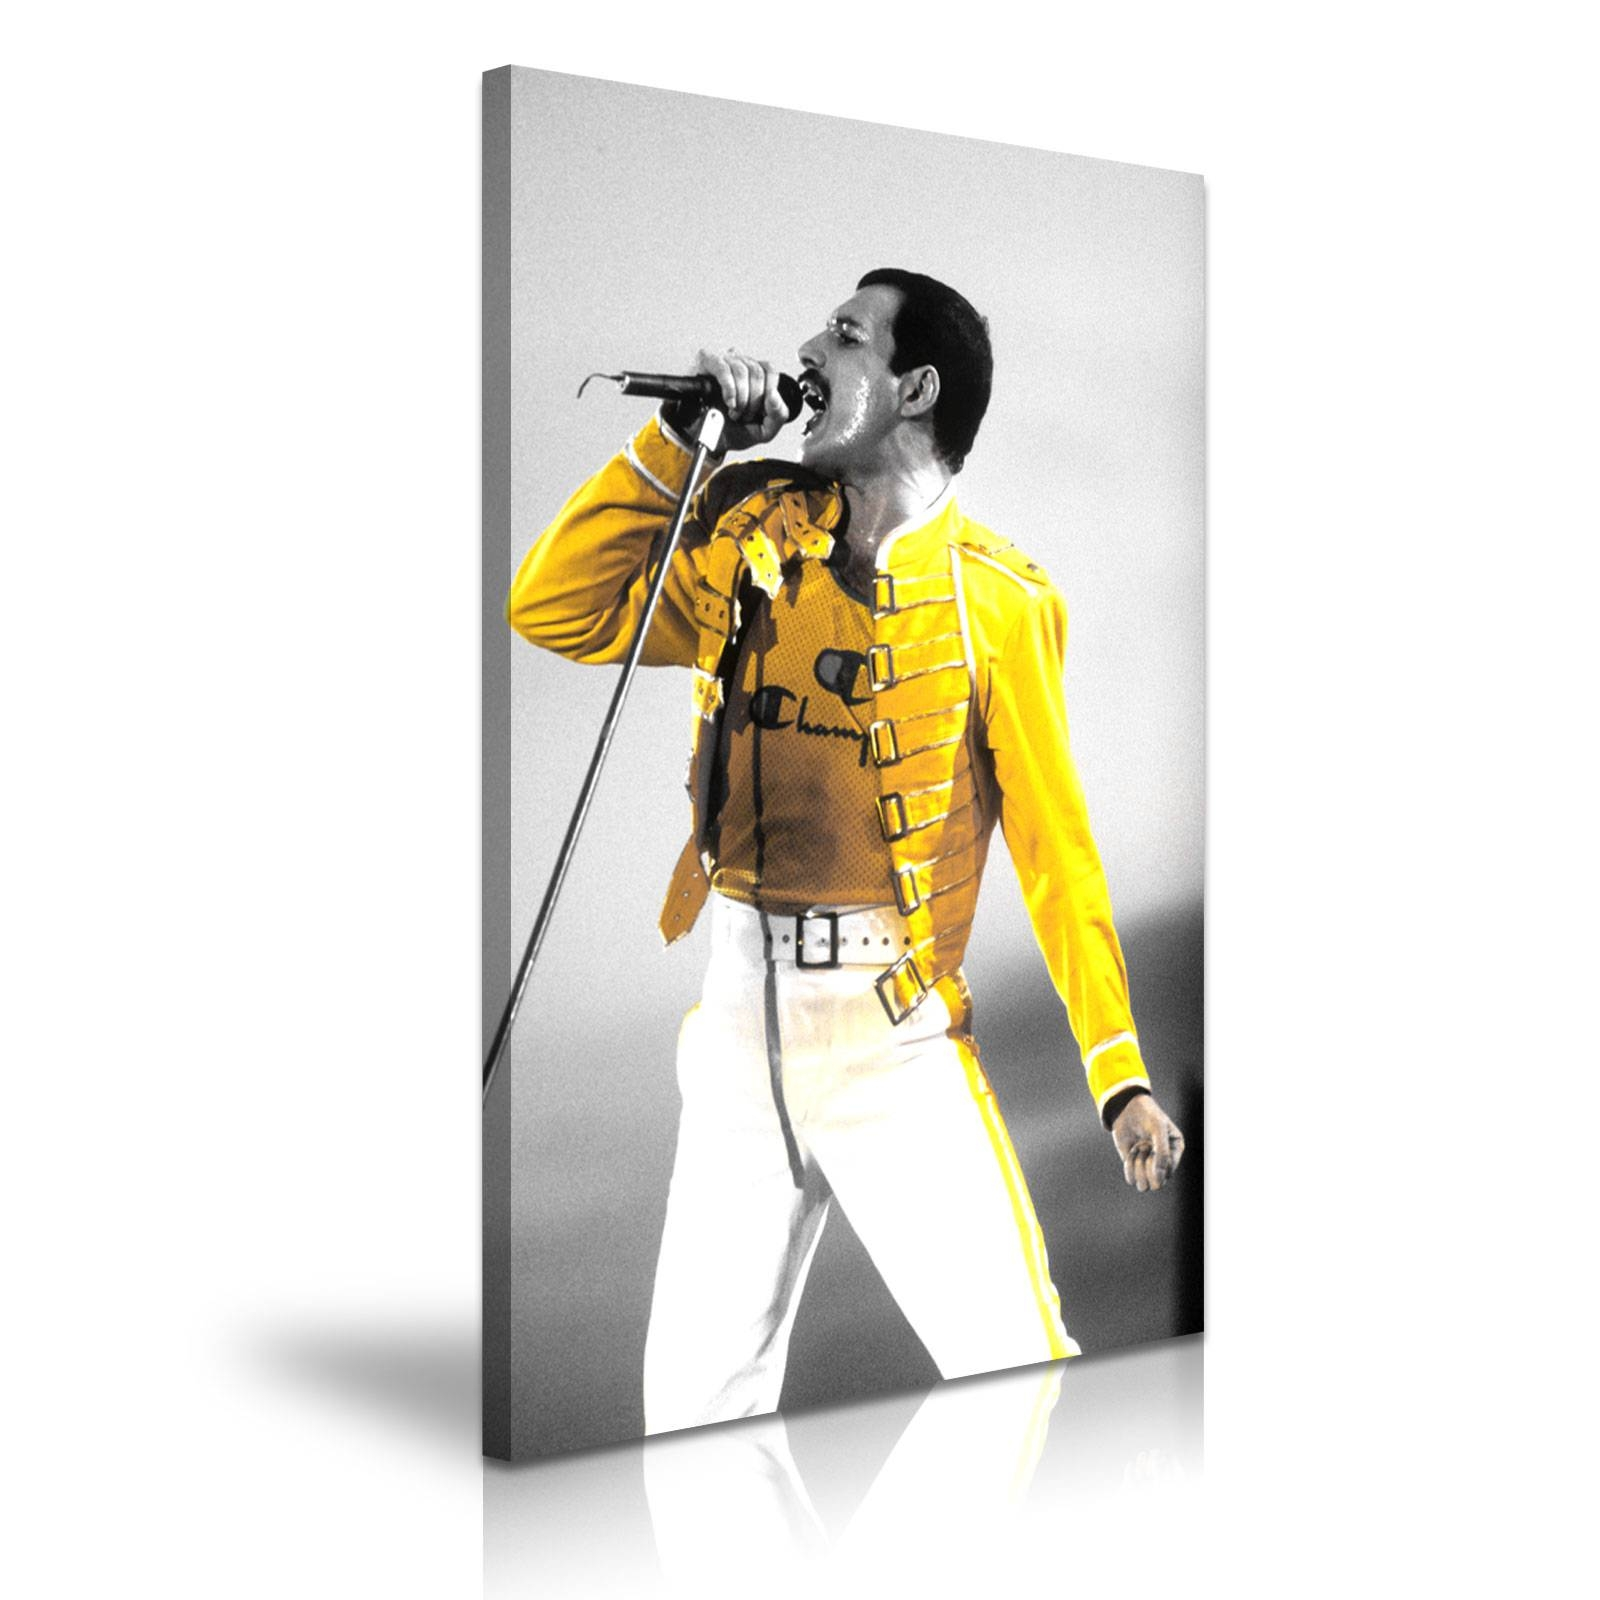 Music & Dance Freddie Mercury Queen Canvas Framed Print Wall Art Within Current Freddie Mercury Wall Art (Gallery 15 of 15)